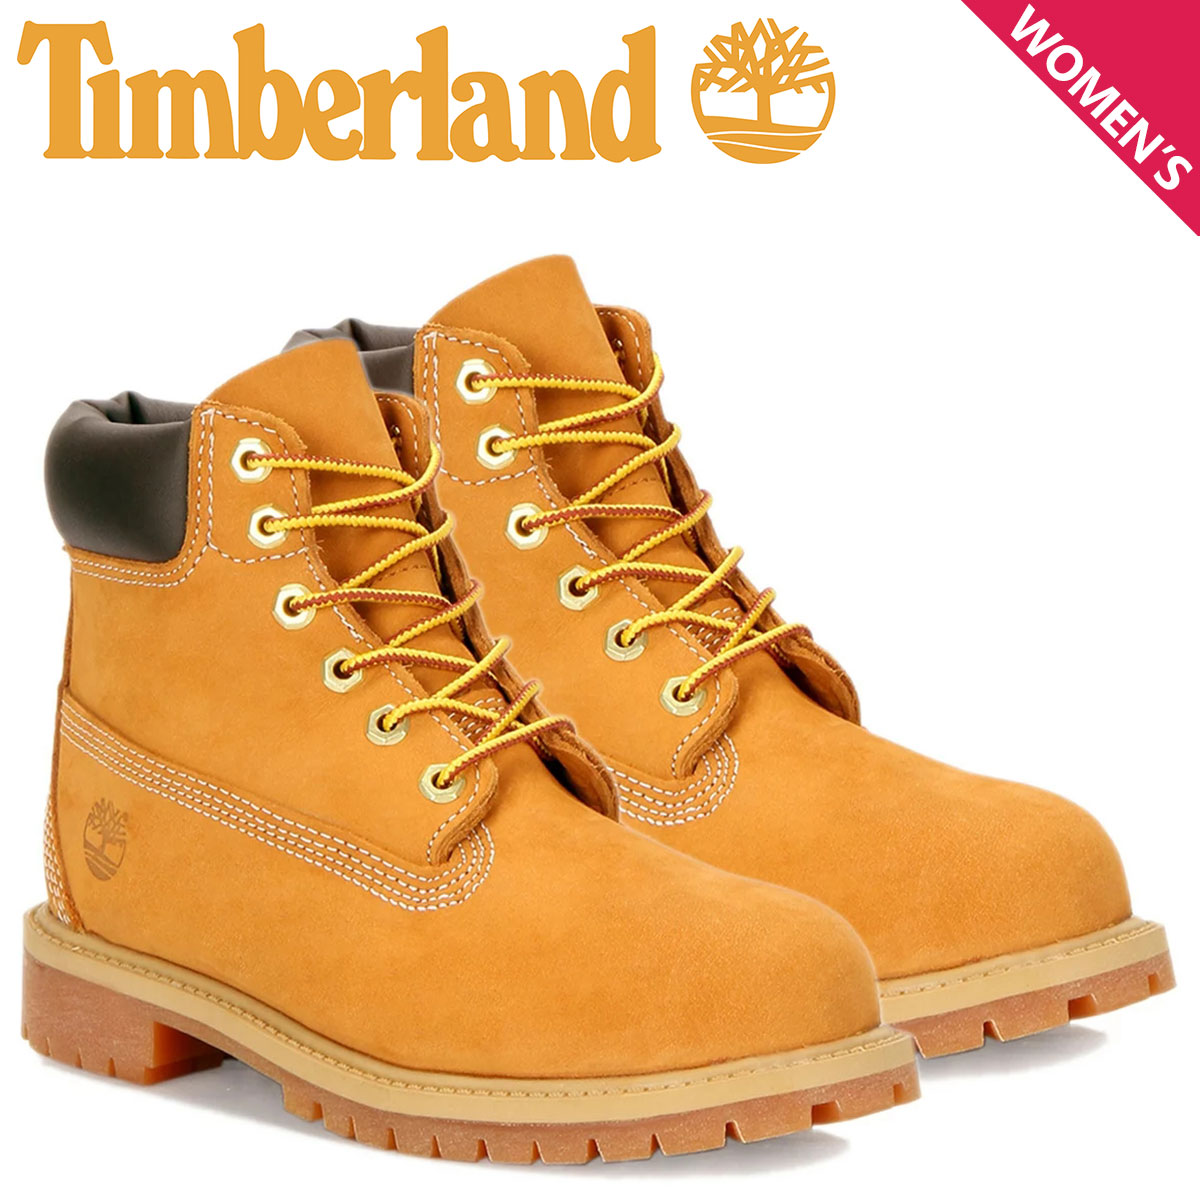 a0093644727 Timberland WOMENS 6INCH PREMIUM BOOT Timberland boots 6 inches premium  Lady's W Wise waterproofing ウィート 10361 [196]